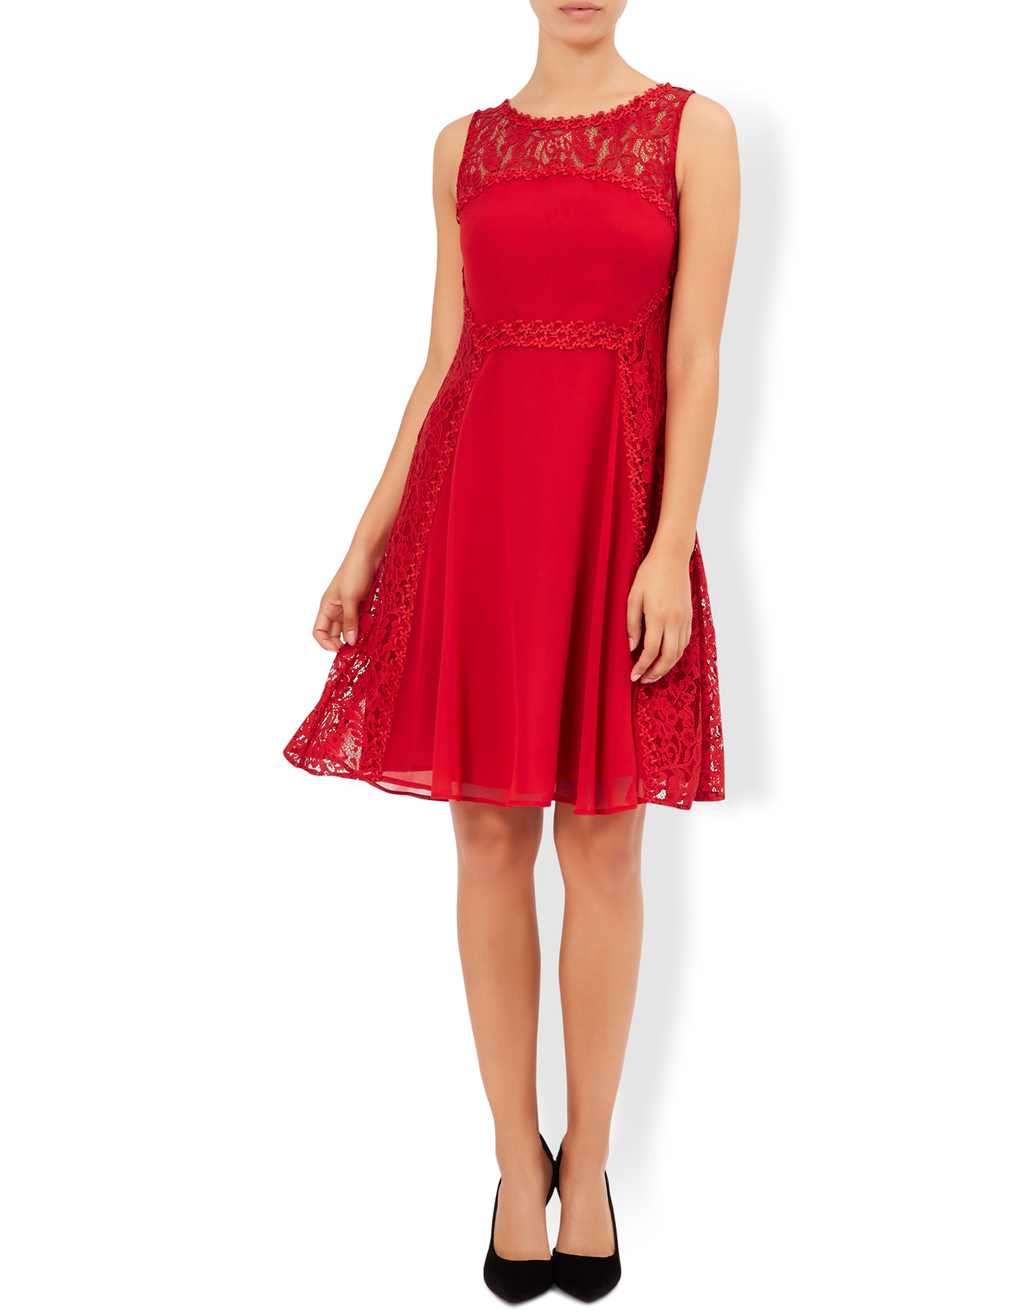 Cressida Dress - pattern: plain; sleeve style: sleeveless; predominant colour: true red; occasions: evening; length: on the knee; fit: fitted at waist & bust; style: fit & flare; fibres: nylon - 100%; neckline: crew; sleeve length: sleeveless; texture group: lace; pattern type: fabric; season: a/w 2016; wardrobe: event